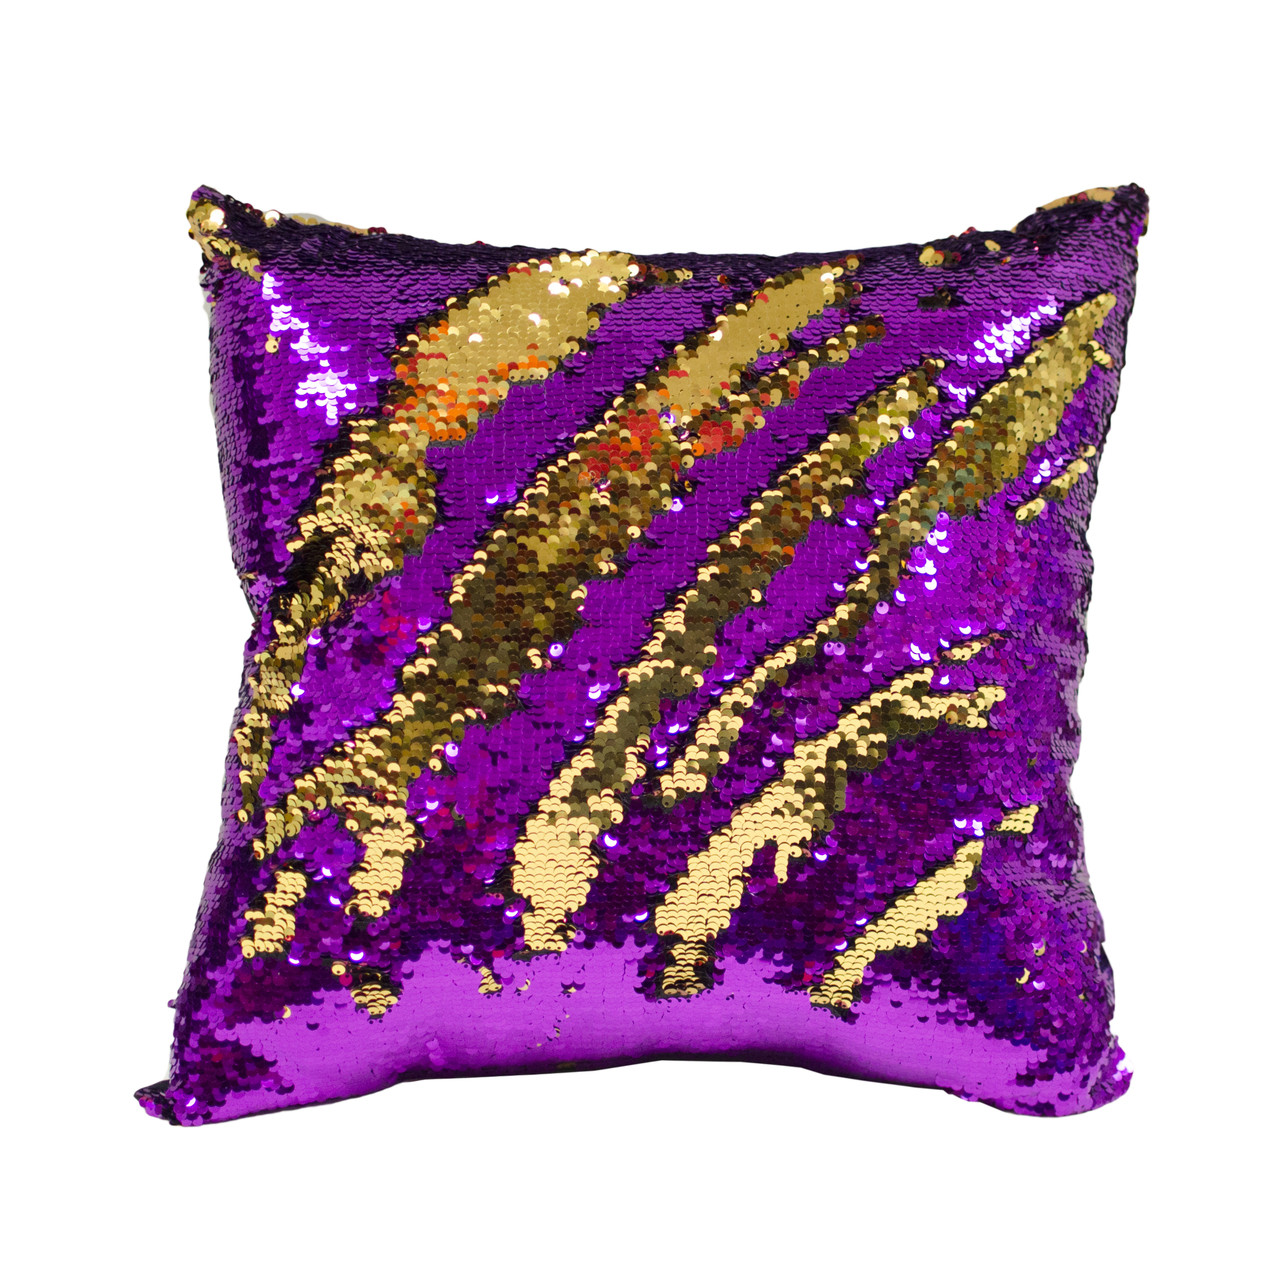 shopswell fabulously affordable lists pillow pillows tina touch midas the throw gold chic